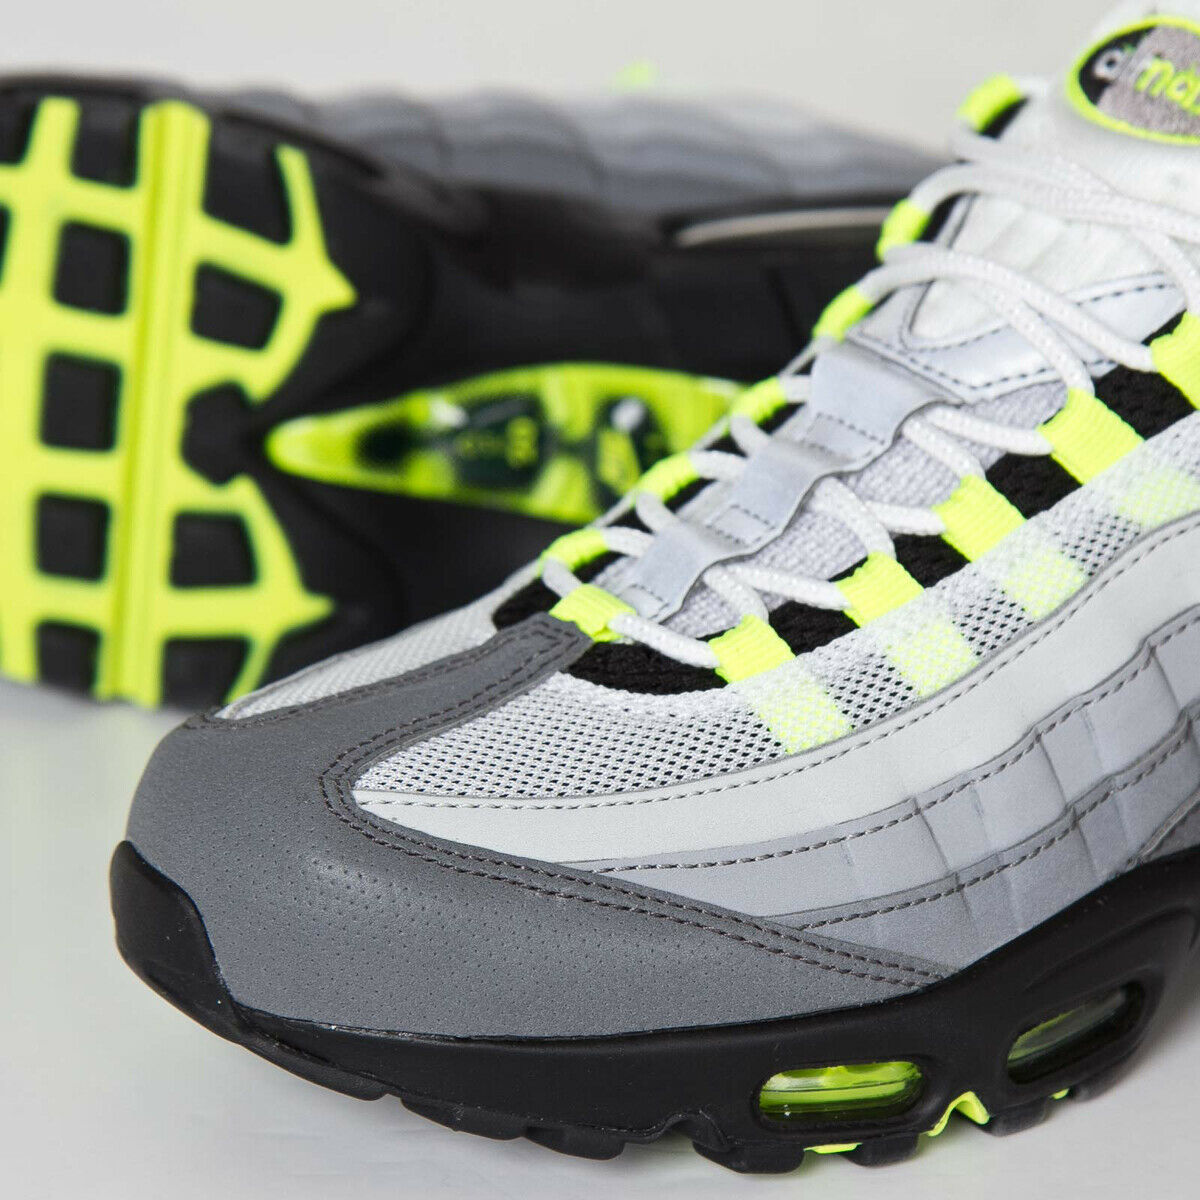 Nike Air Max 95 OG Premium Reflective Neon 3M 10US 759986-070 Brand New In Box